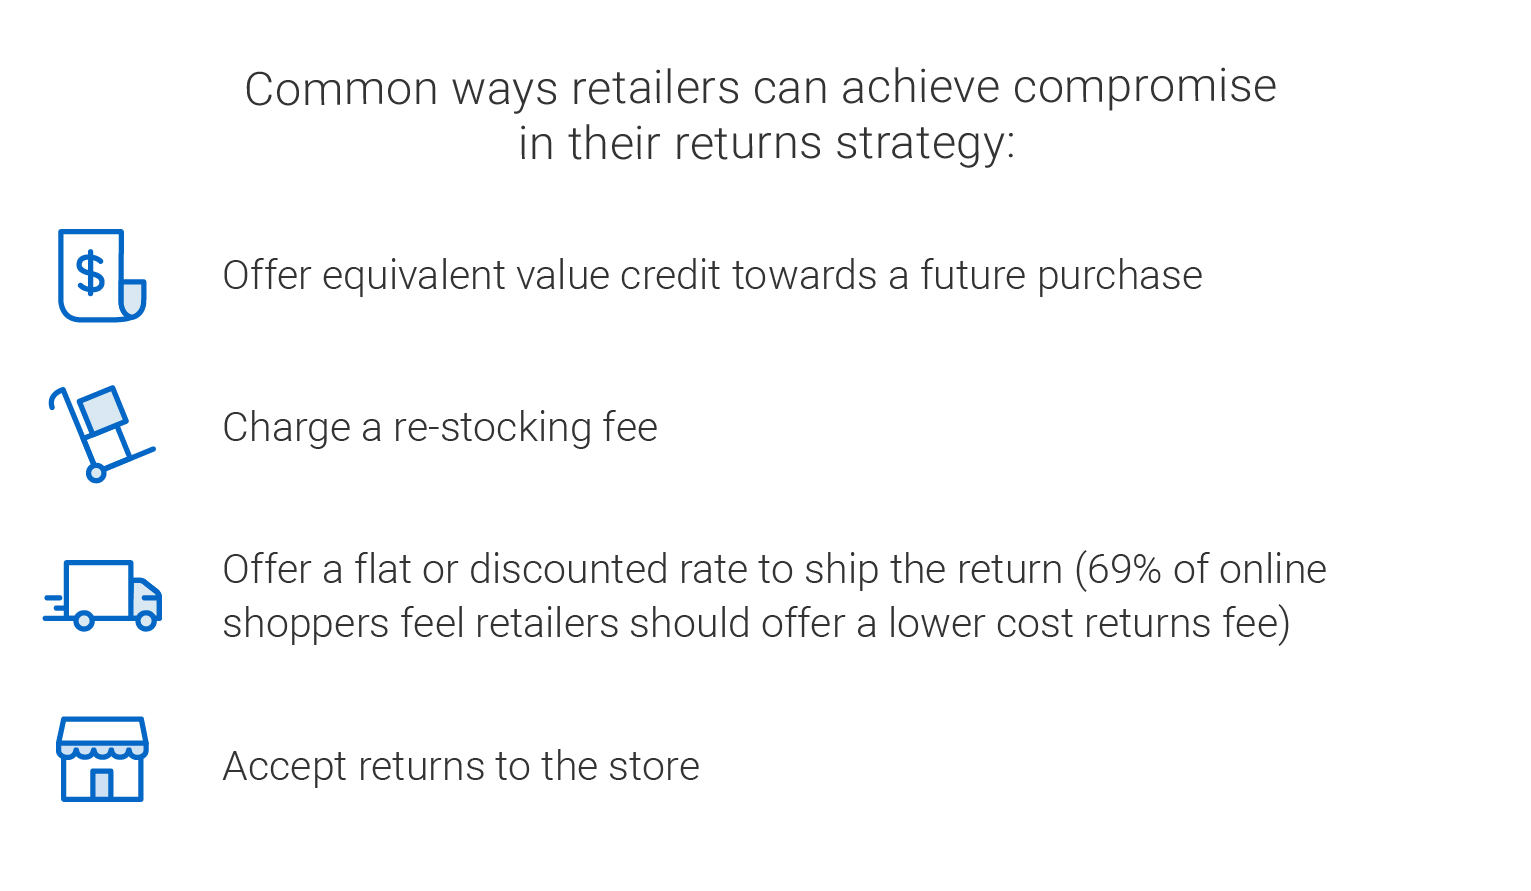 Common ways retailers can achieve compromise in their returns strategy:  Offer equivalent value credit towards a future purchase. Charge a restocking fee. Offer flat or discounted rate to ship the return (69 per cent of online shoppers feel retailers should offer a lower cost returns fee). Accept returns to the store.